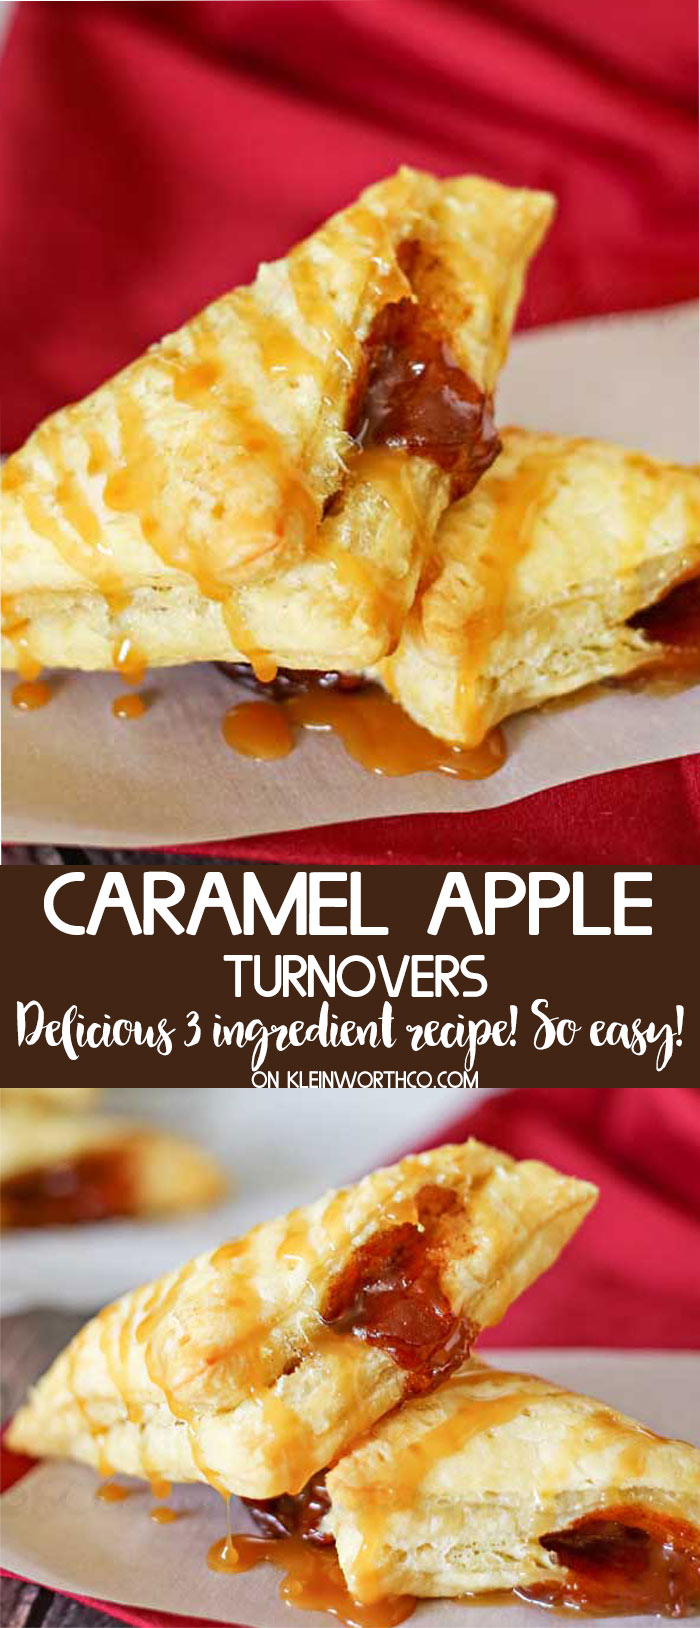 Caramel Apple Turnovers recipe - just 3 ingredients PLUS video